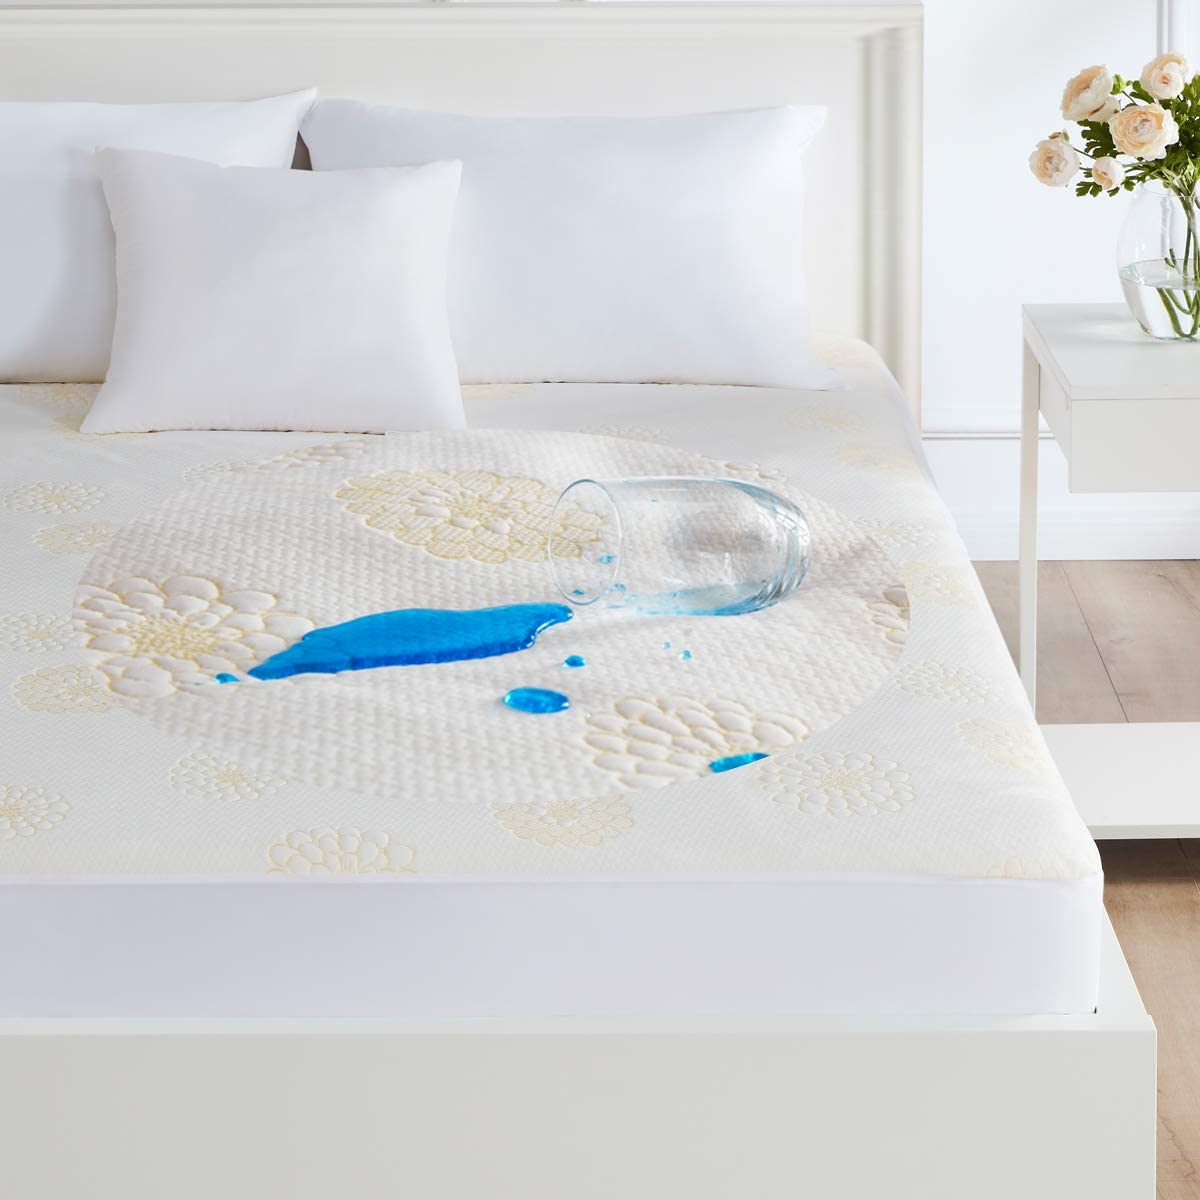 Queen Size Bed Waterproof Mattress Protector Pad,Cooling Bamboo Bed Mattress Pad Covers Hypoallergenic Dust Mite